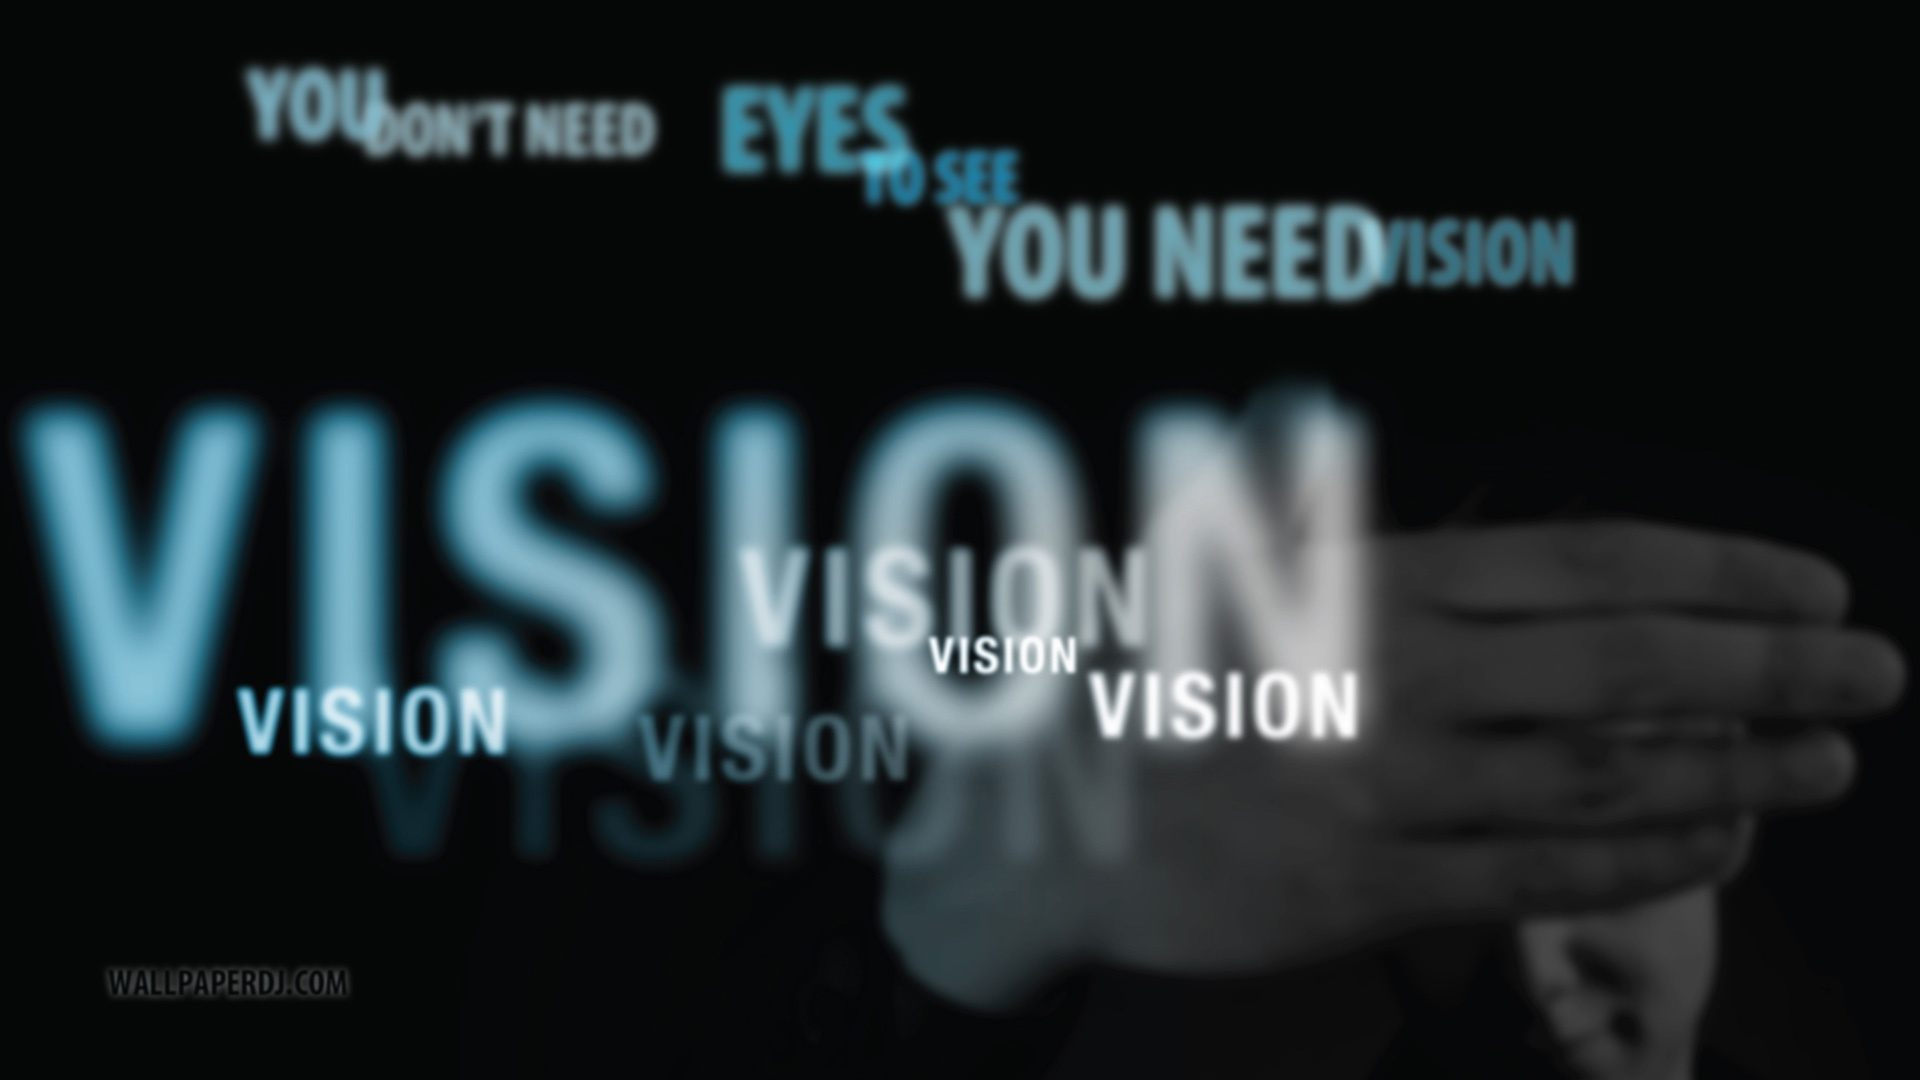 vision – rsb investment | creative finance